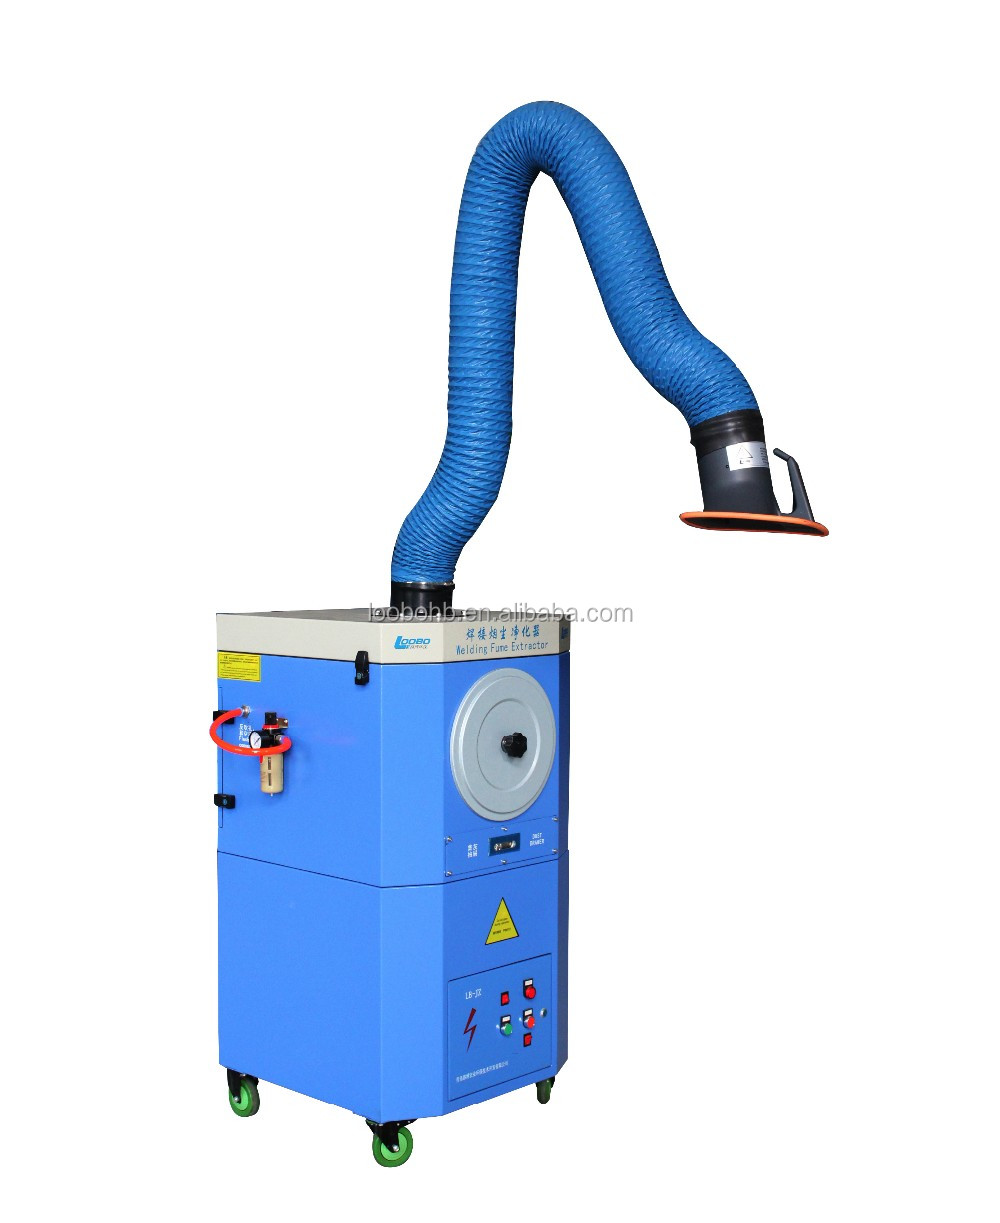 mobile workshop exhaust fan for fume extraction soldering fume extractor for industrial air ventilation buy mobile workshop exhaust fan for fume